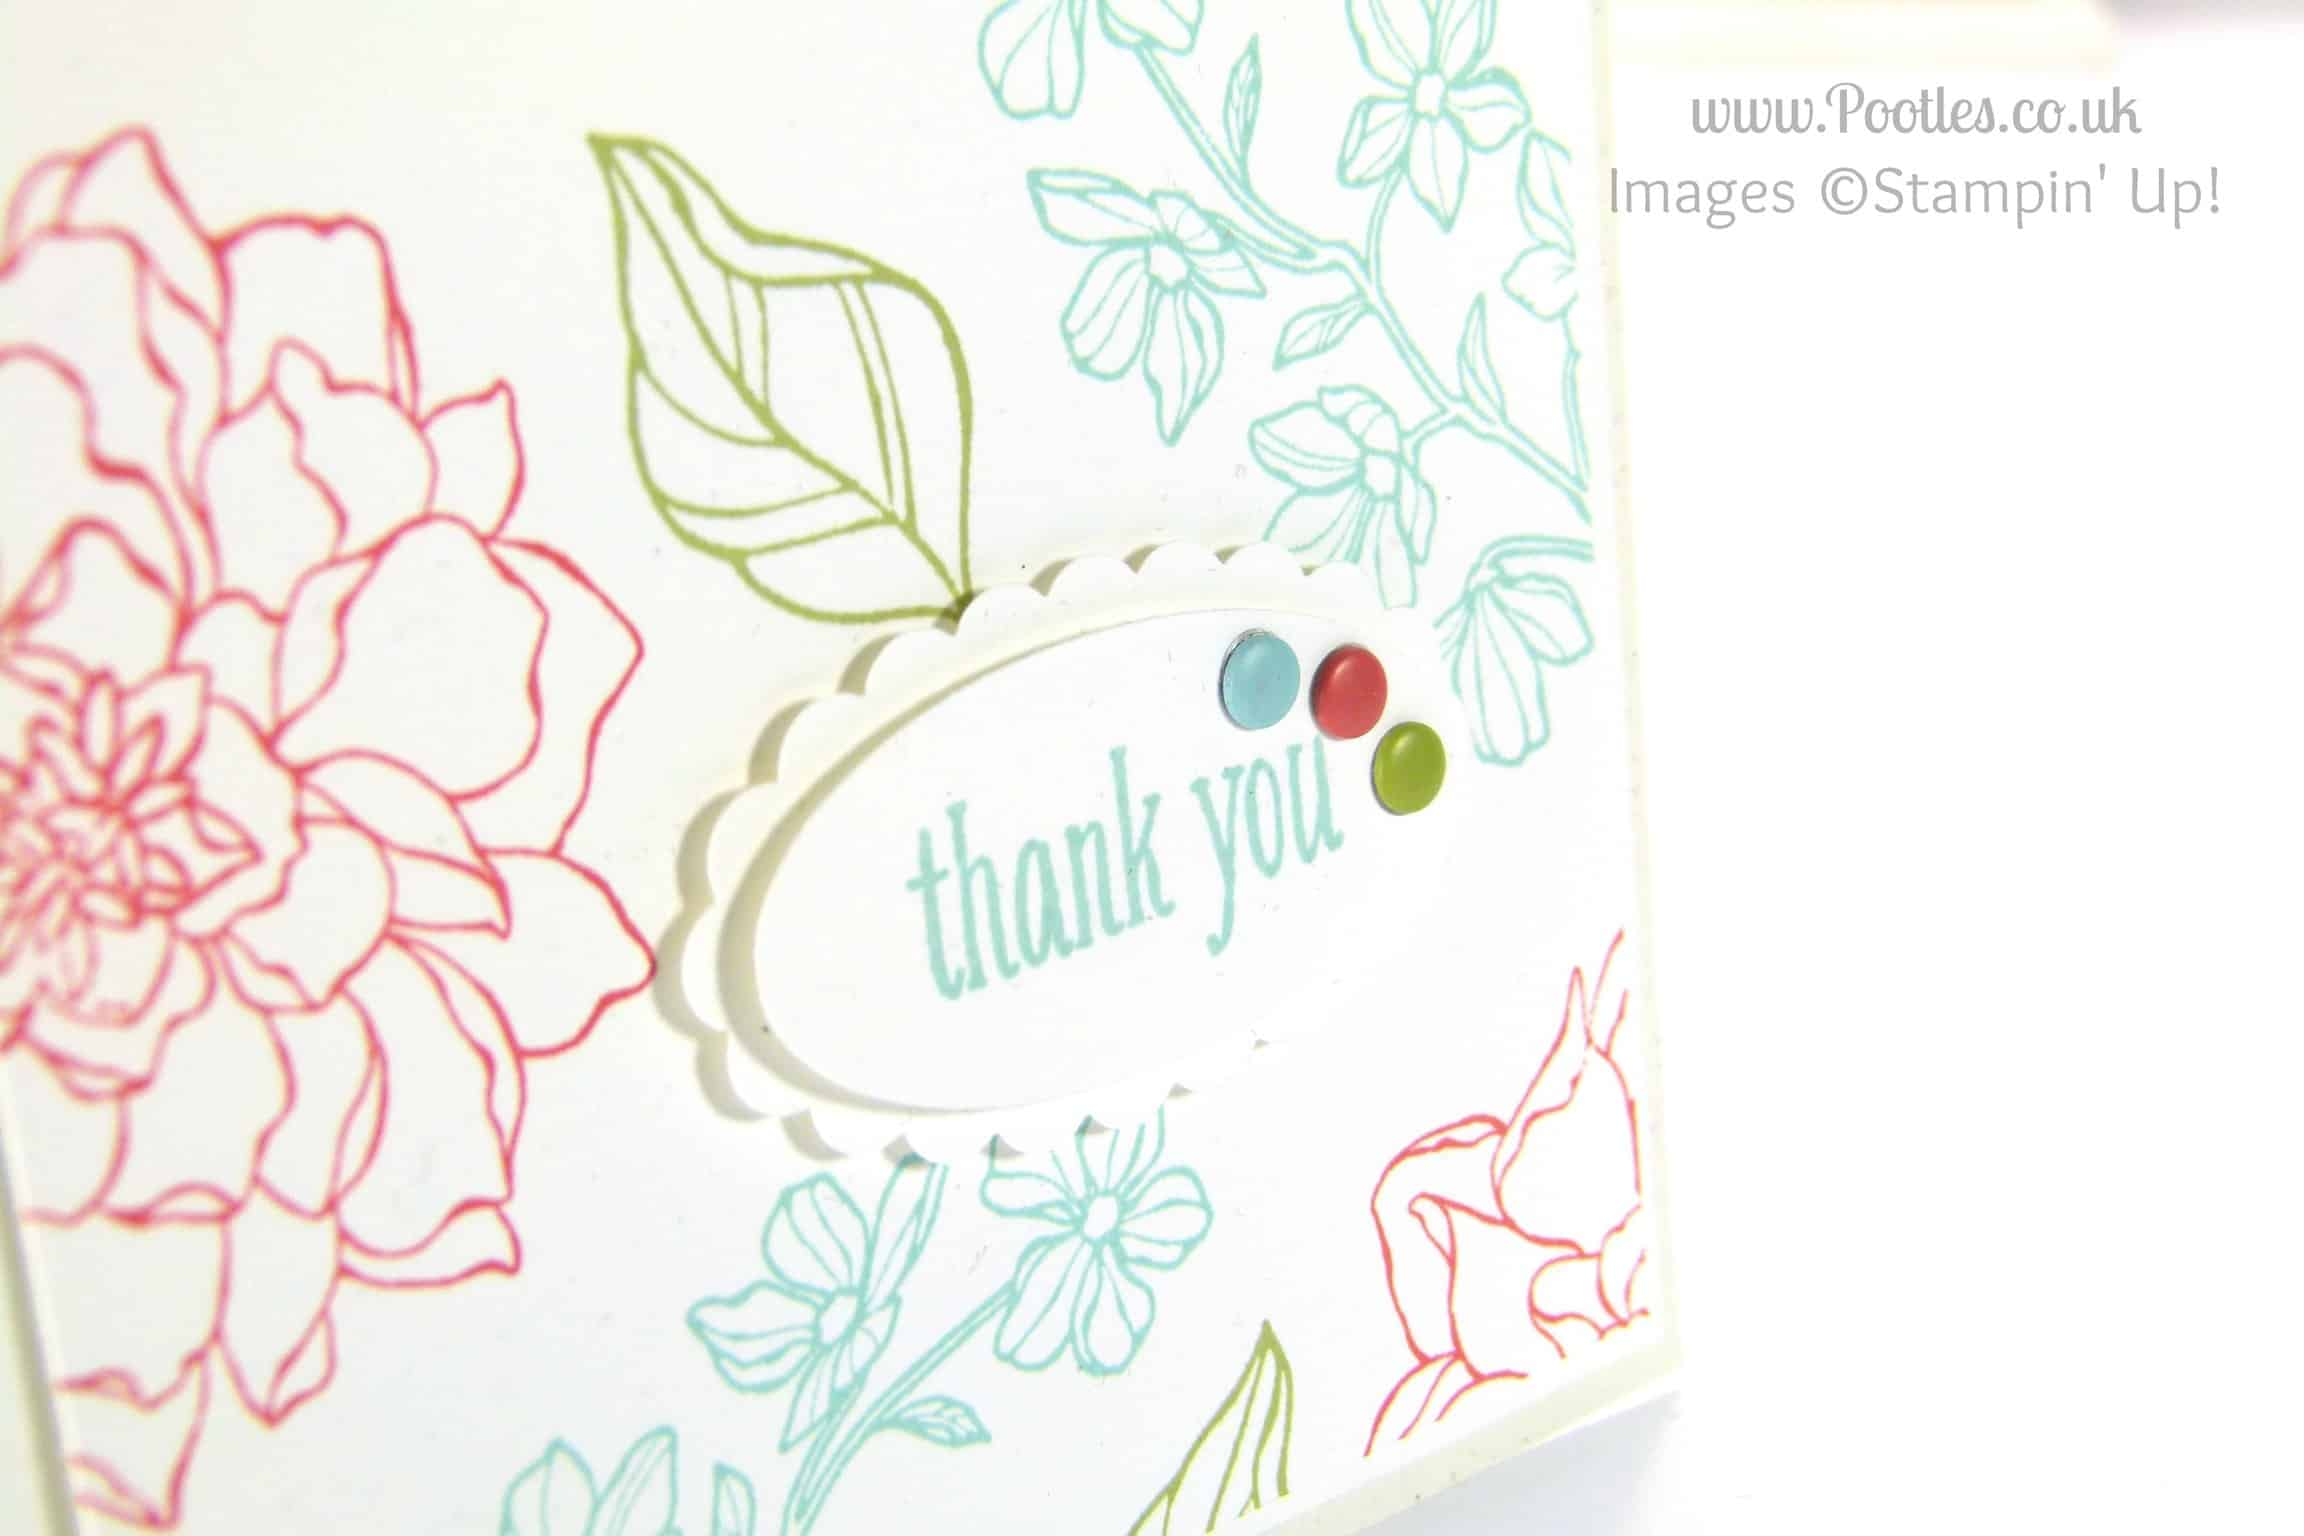 Stampin' Up! UK Independent Demonstrator - Pootles. Peaceful Petals, a Subtles Card! Sentiment Clos Up